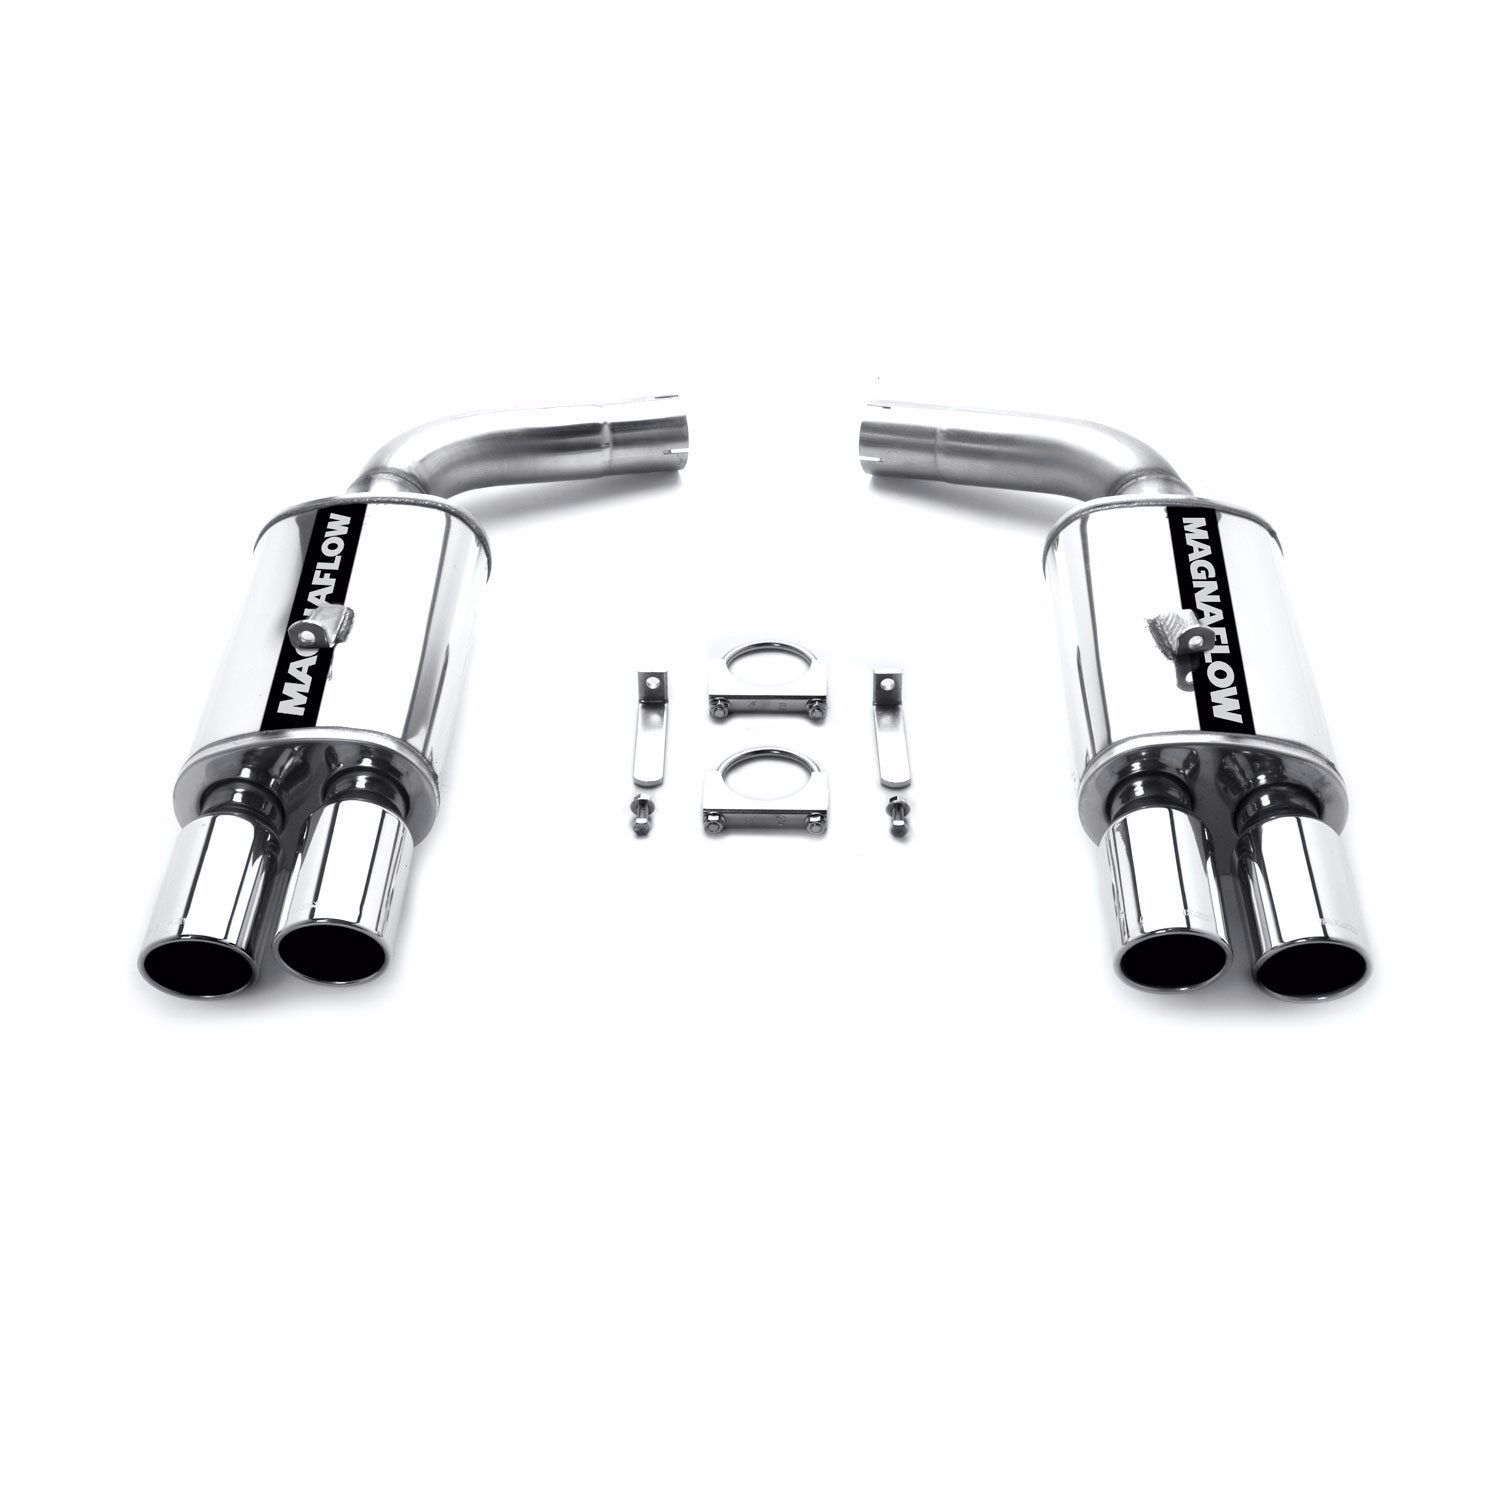 Magnaflow Street Series Axle Back Exhaust